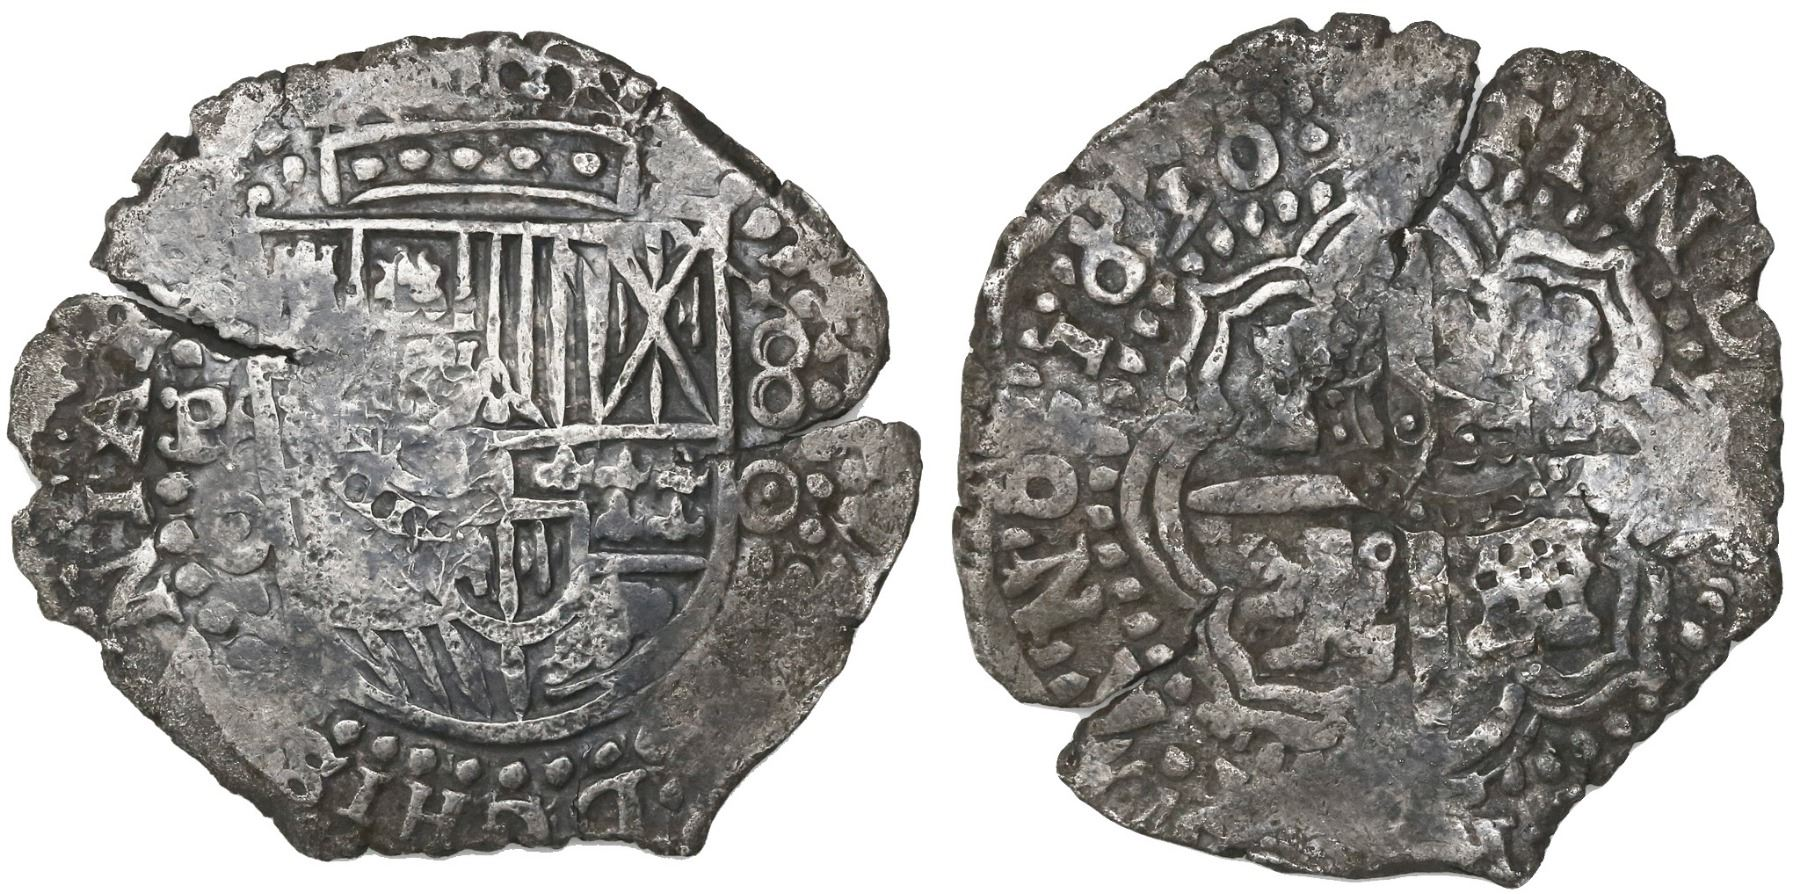 Potosi, Bolivia, cob 8 reales, (16)52E transitional Type IV/A. S-P37; KM-A20.4; CT-432. 22.12 grams. Bold full pillars (and crown above) with full F-8-IIII, PLV-SVL-TRA and E-8-E, full crowned shield with bold O-E-52 to right but with much corrosion on that side, deeply toned all over. Pedigreed to the Roberto Mastalir collection, #IV.1-A.ad1(11)4 in his book (page 94), with Herman Moro photo-certificate #pat-3200.